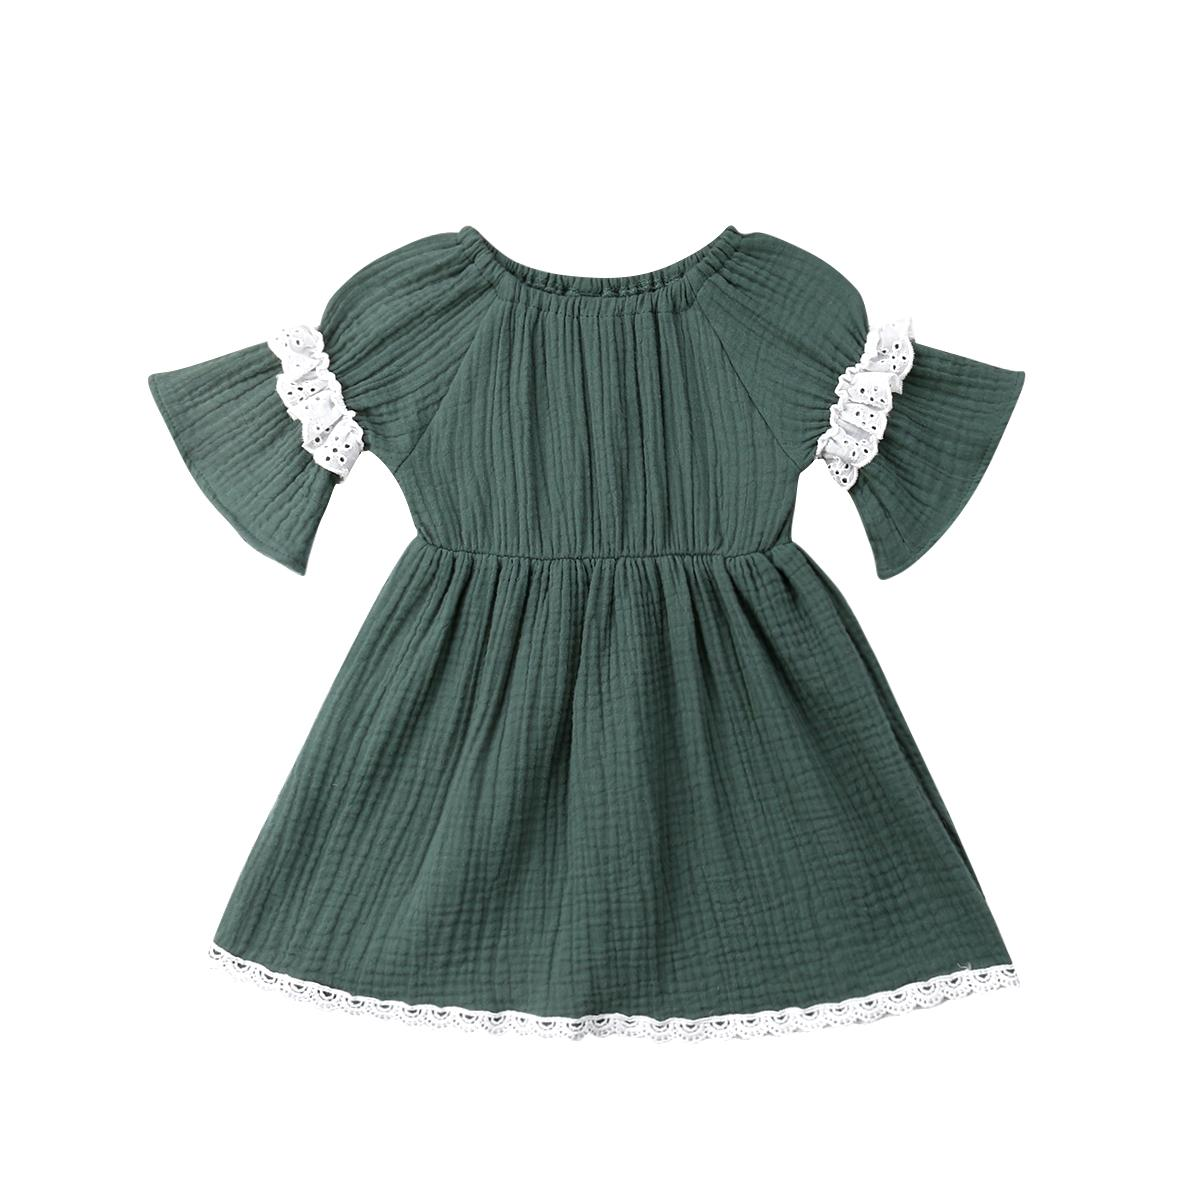 79106cf8c 2019 Infant Newborn Baby Girls Dress Vintage Ruffles Lace Green Party Holiday  Dress For Baby Girl Half Sleeve Baby Girl Costumes From Etamkend, ...